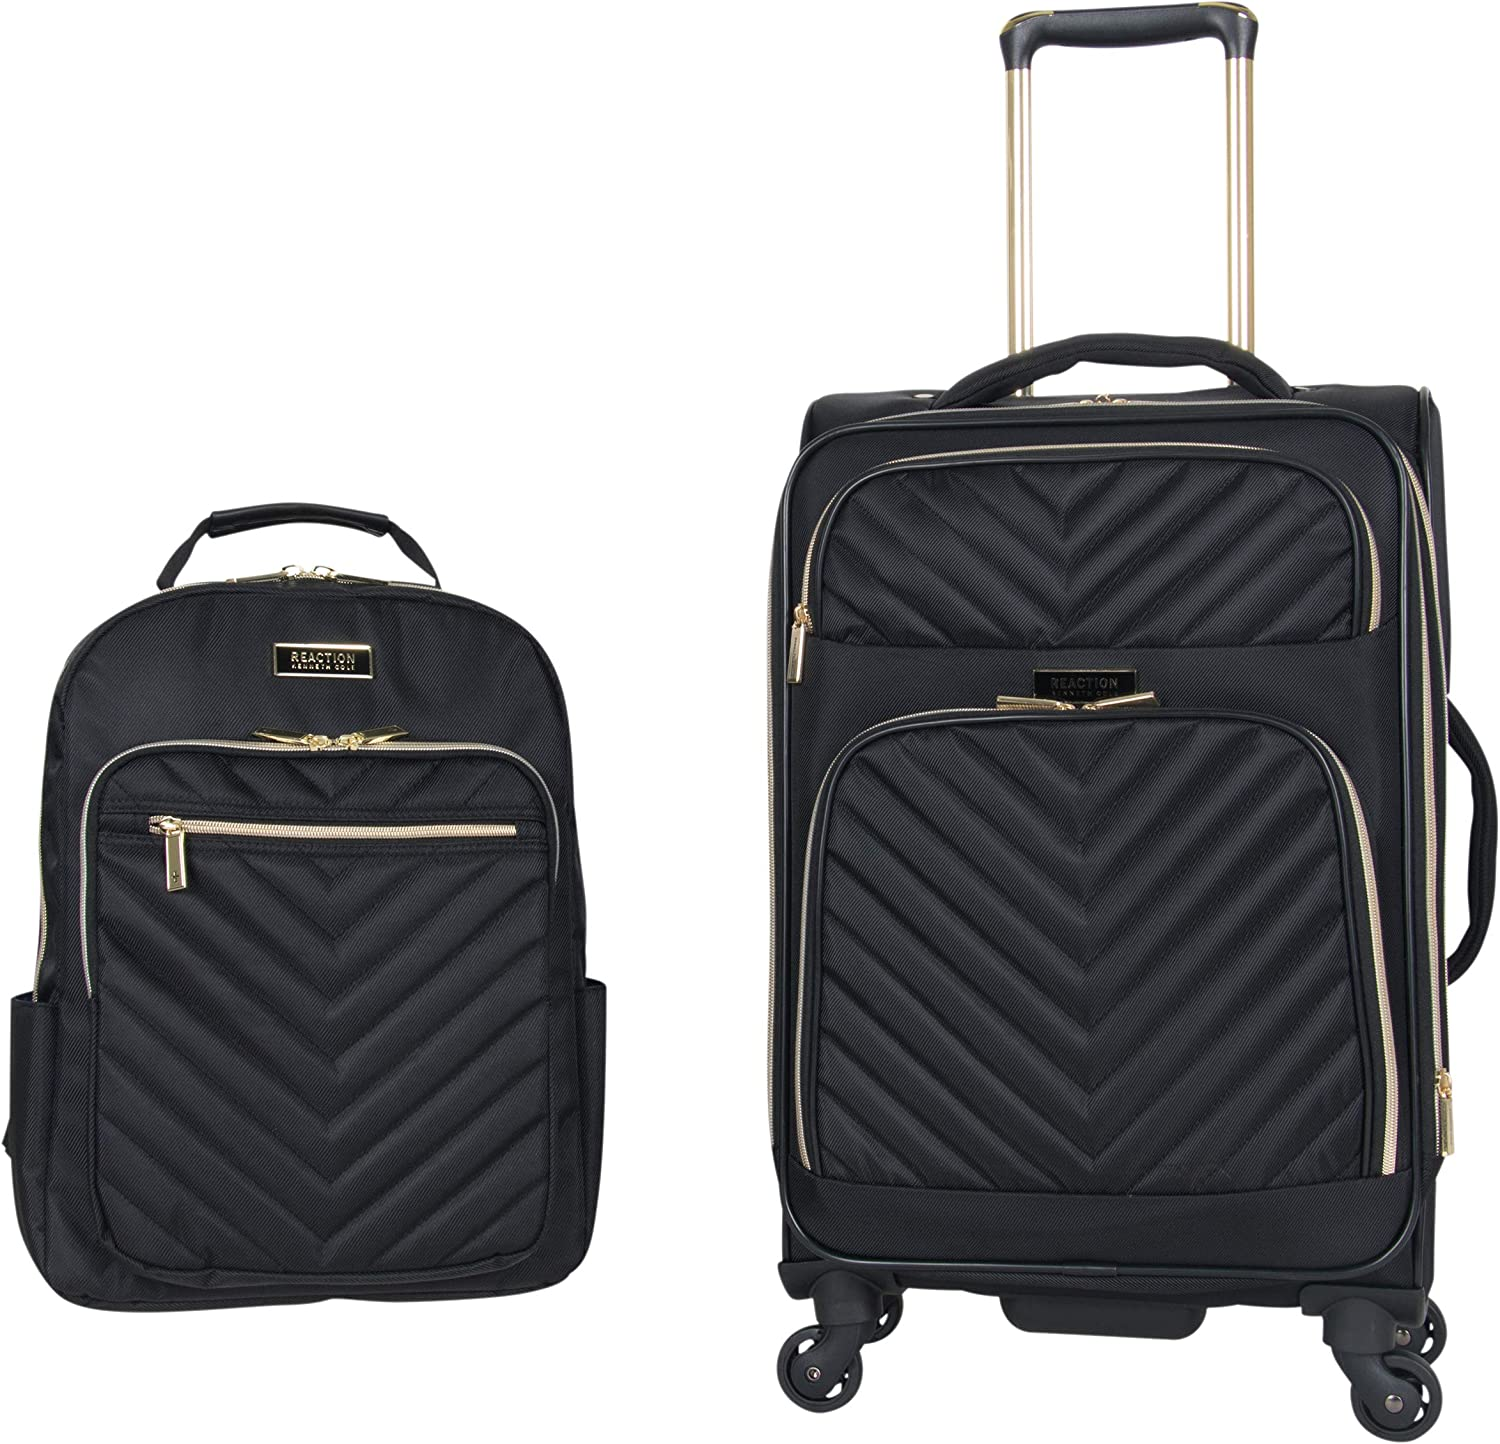 "Kenneth Cole Reaction Women's Chelsea 2-Piece 20"" Expandable 4-Wheel Carry-On Suitcase & Matching 15"" Laptop Backpack, Black"